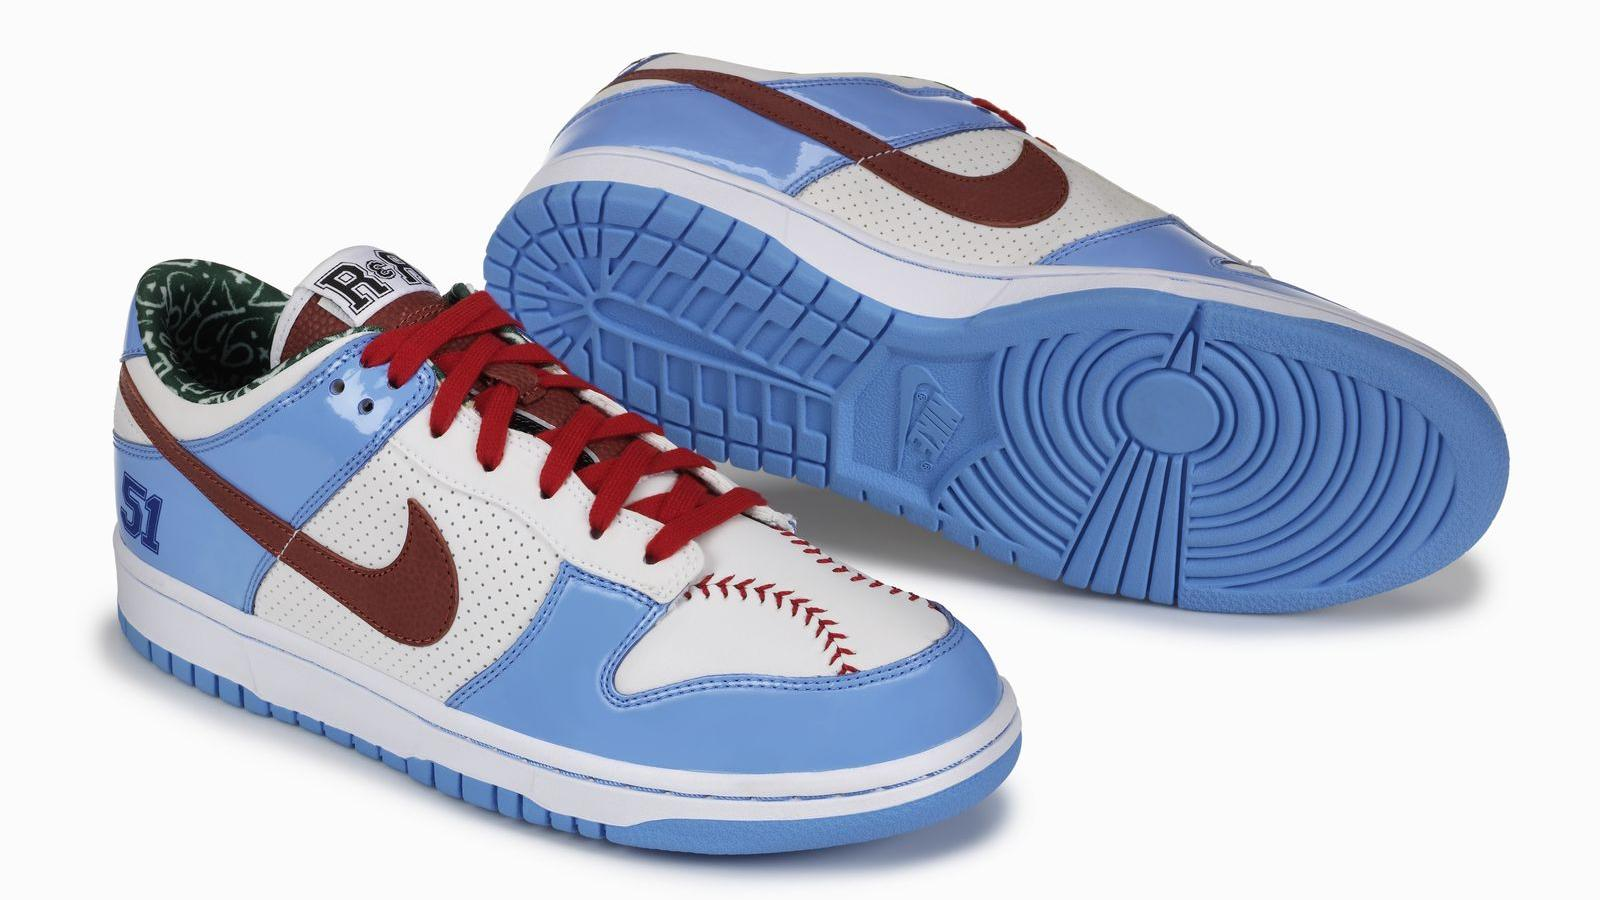 Ricky Rudd, 2007 Dunk Low: Baseball-stitched vamp on the right shoe and football-inspired tip on the left shoe; and a call-out to his favorite number 7 on the ankle of the left shoe, white reflective perforation on left lateral quarter